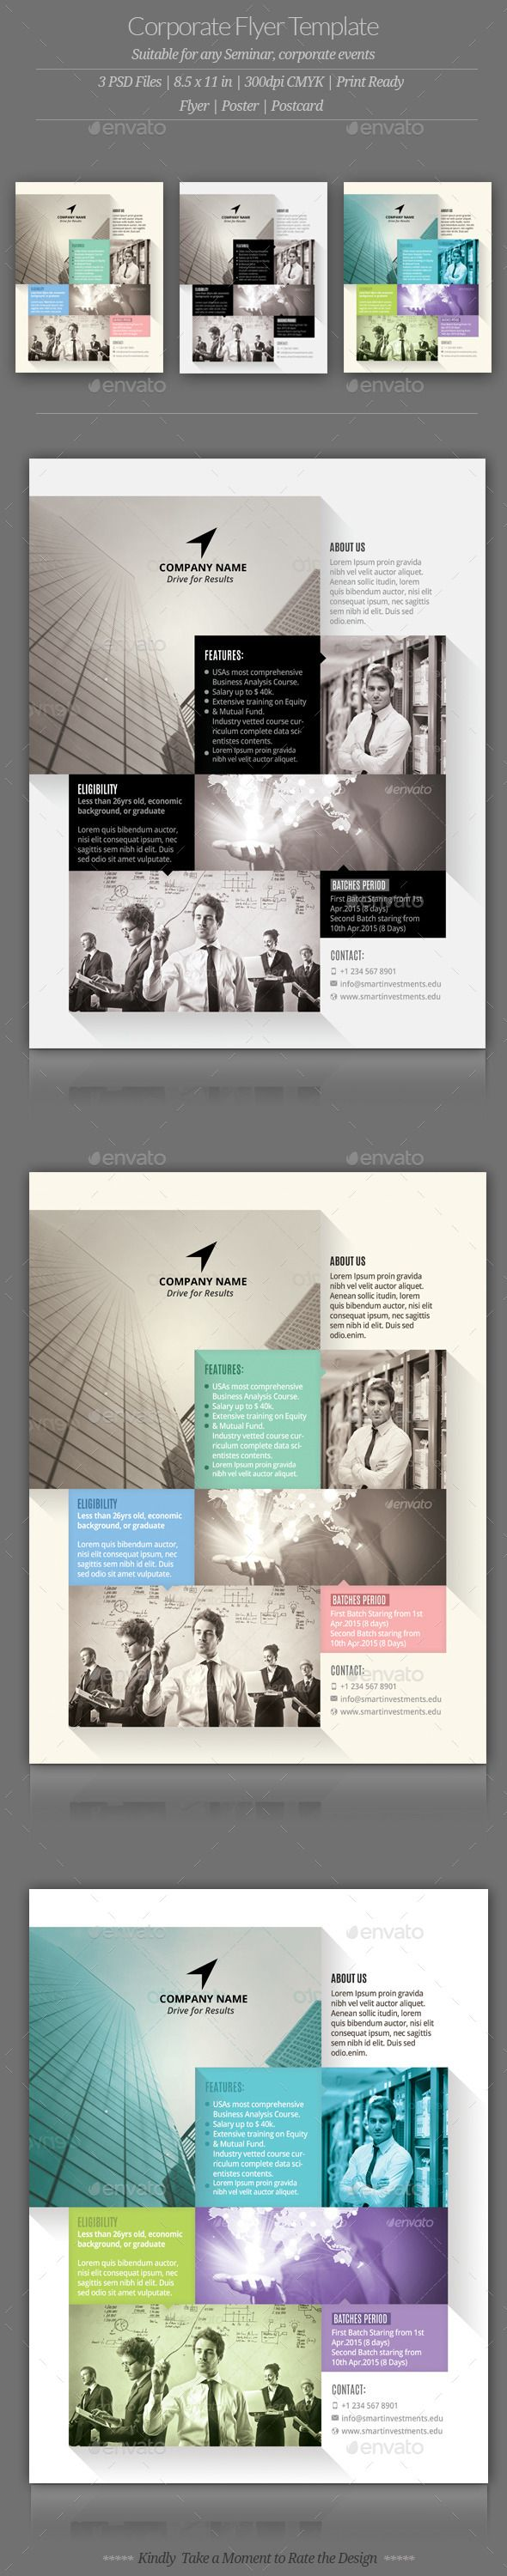 16 best Posters & Flyers images on Pinterest | Page layout ...